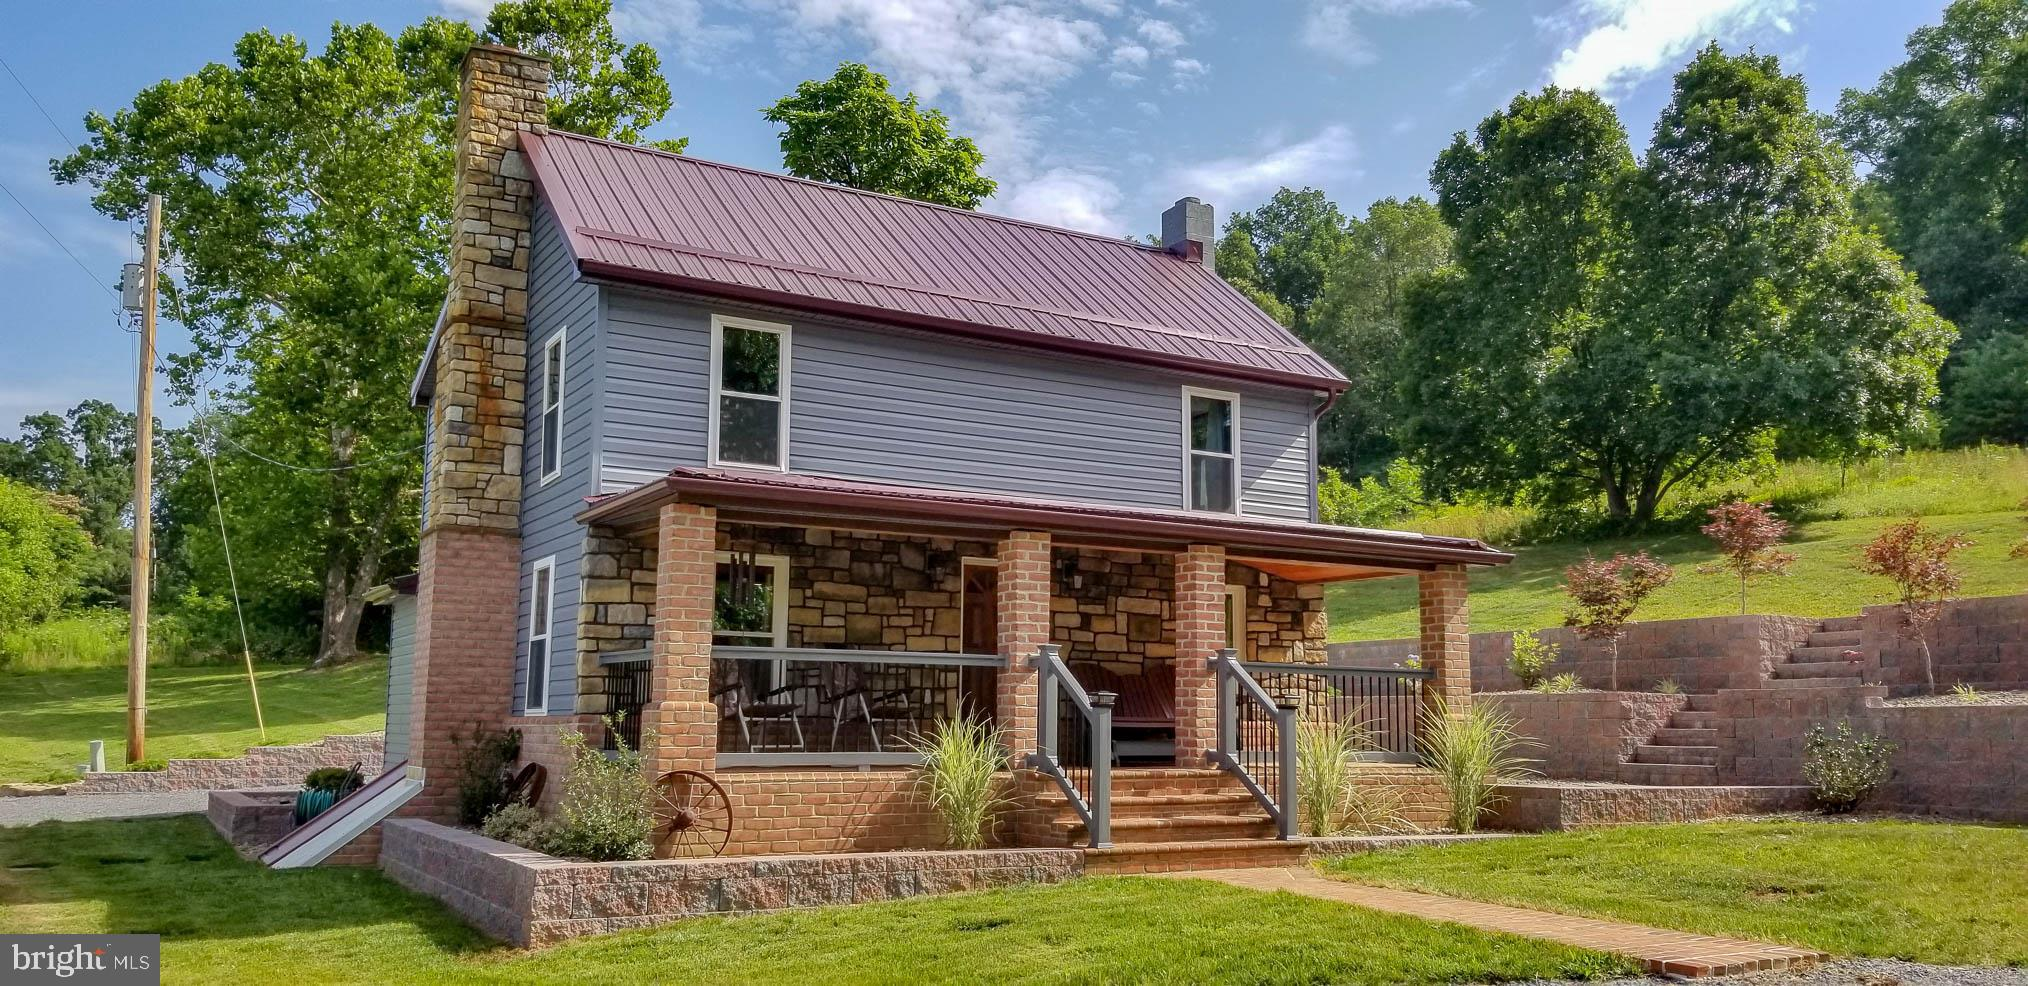 11909 OREBANK ROAD, CLEAR SPRING, MD 21722